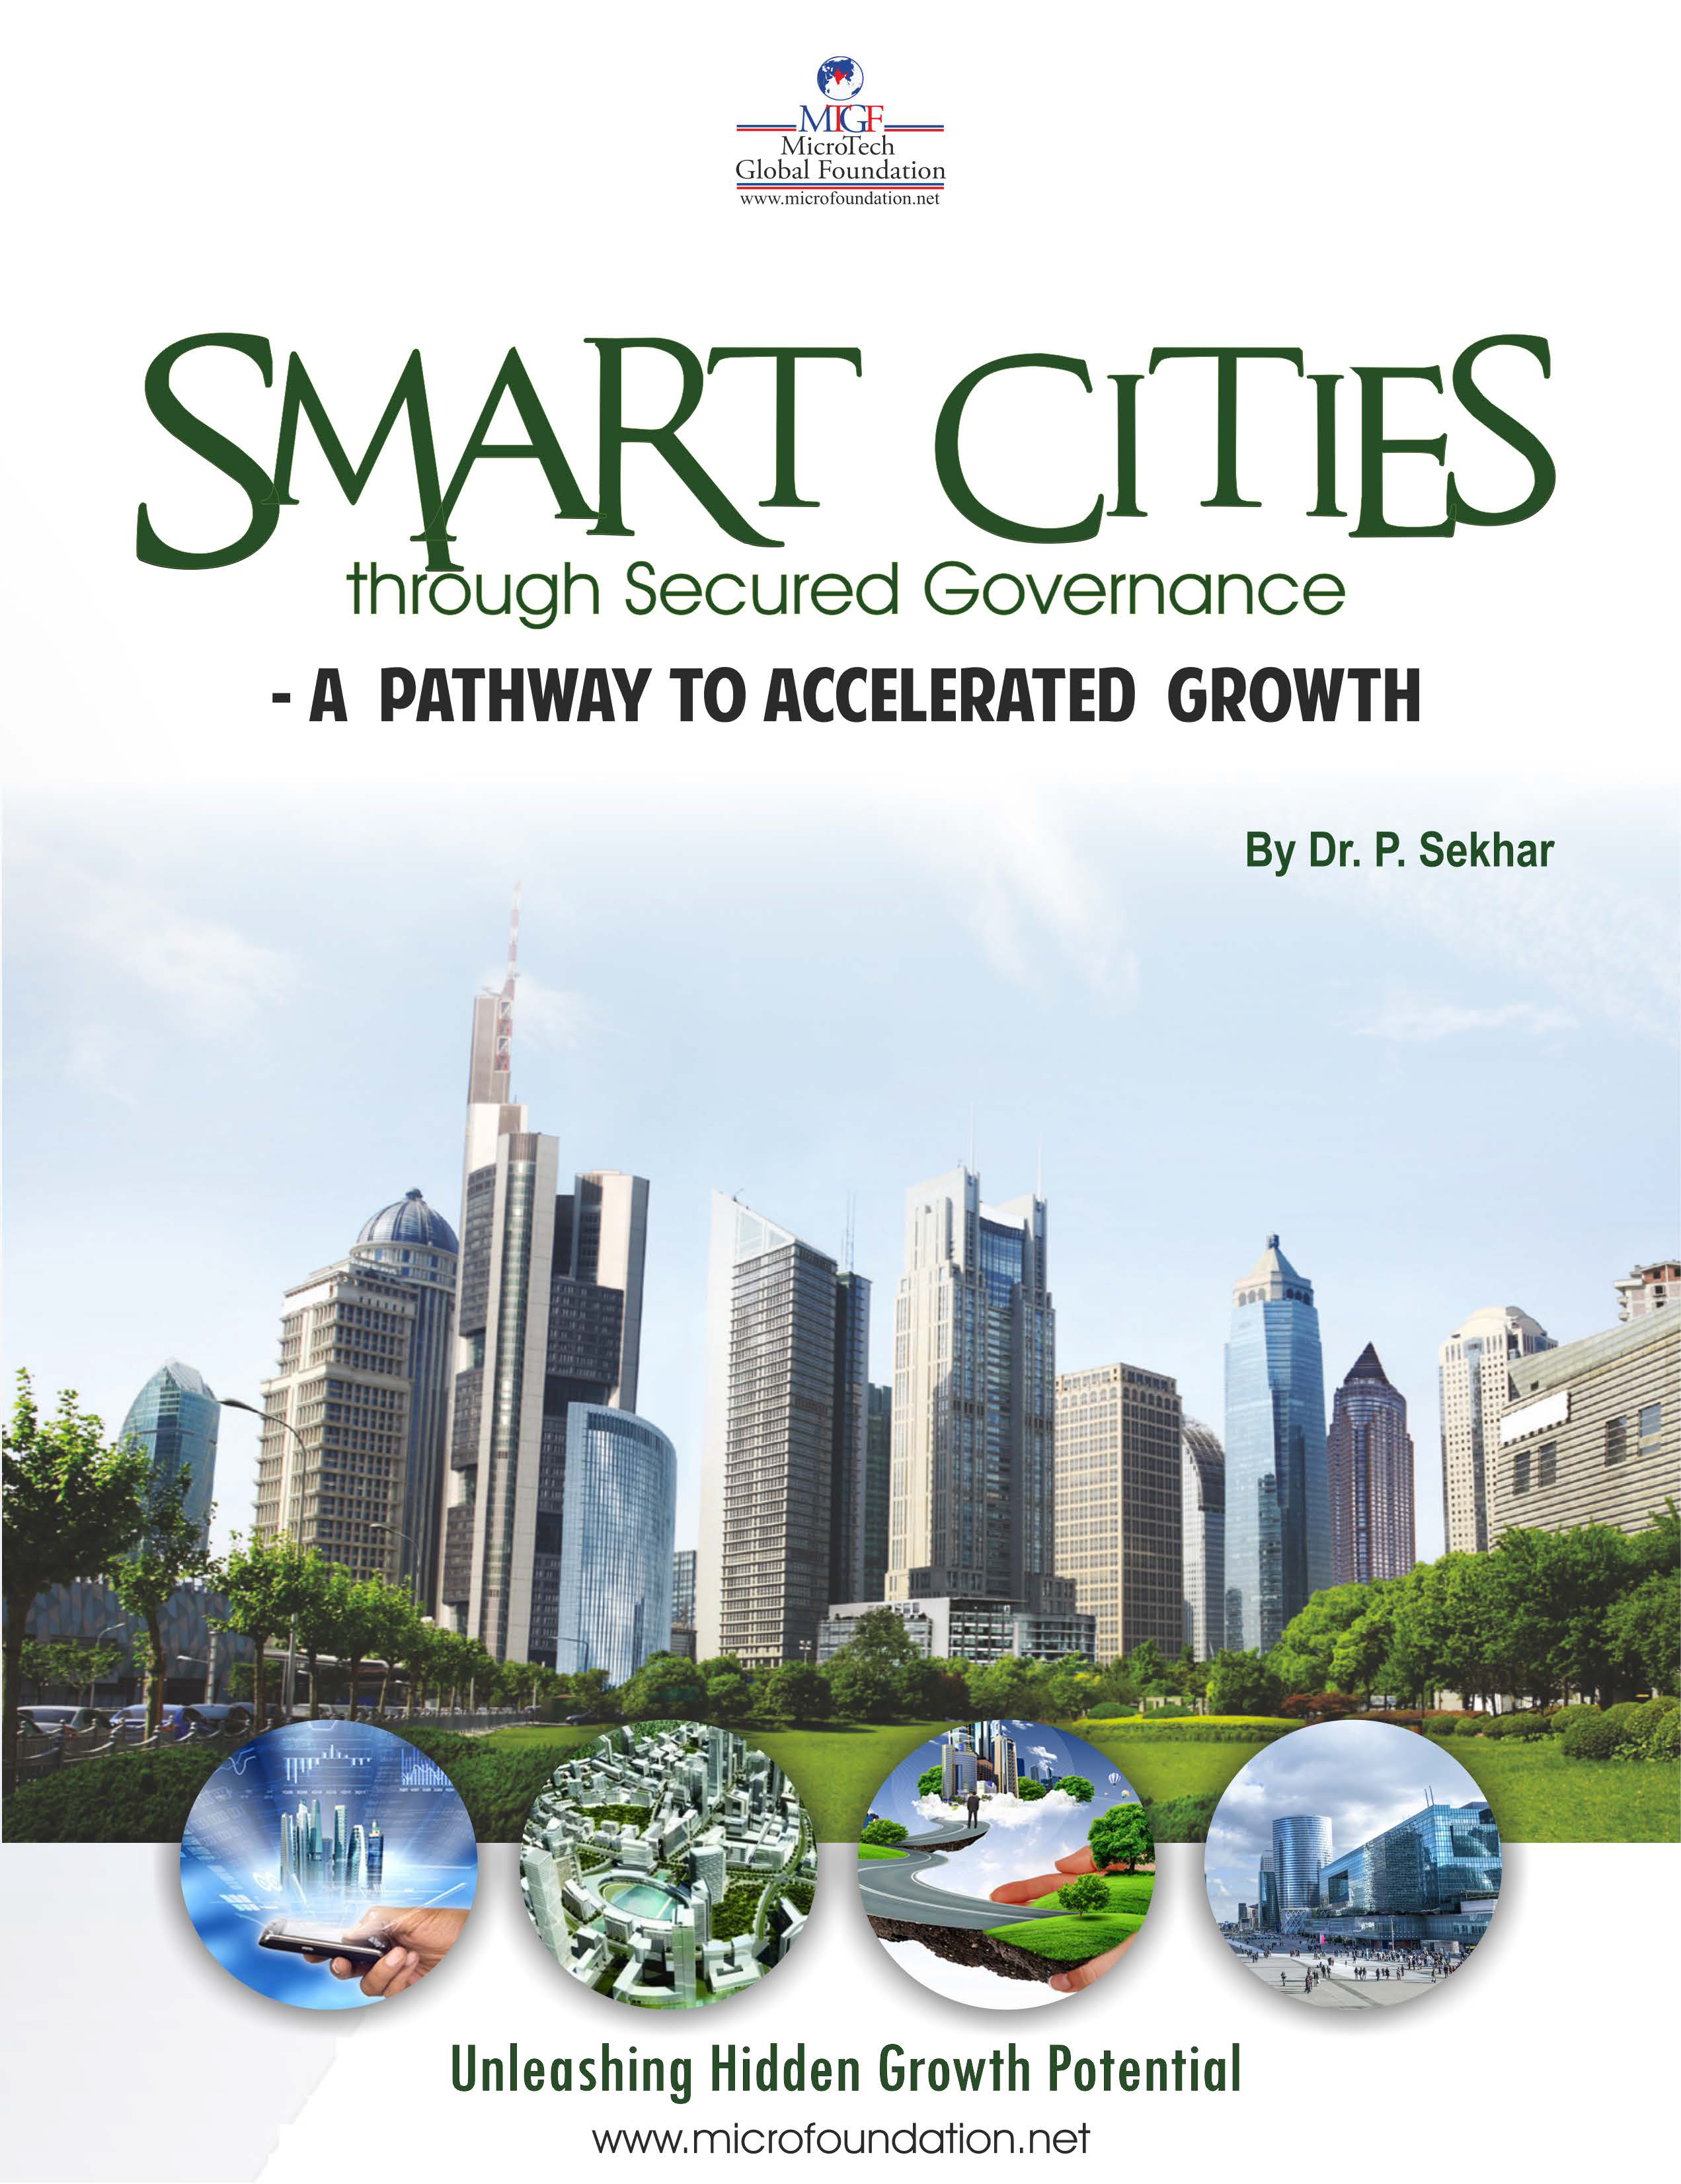 Smart Cities through Secured Governance